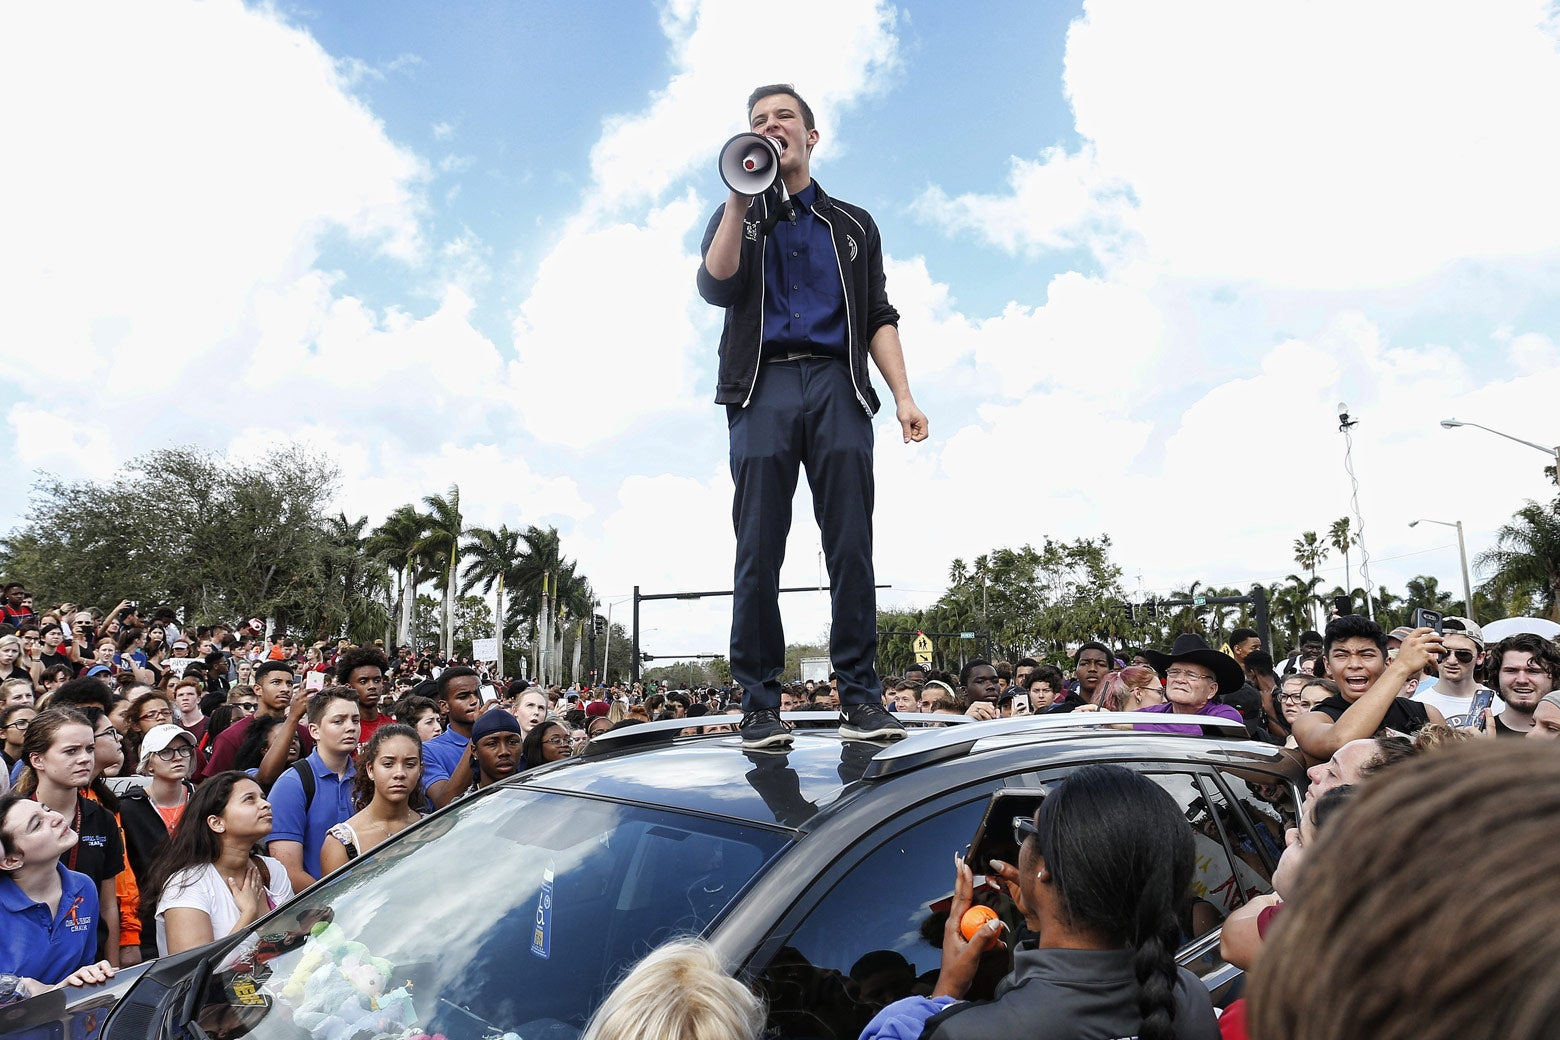 Majory Stoneman High School student Cameron Kasky addresses students as they rally after participating in a countywide school walkout in Parkland, Florida, on Wednesday.